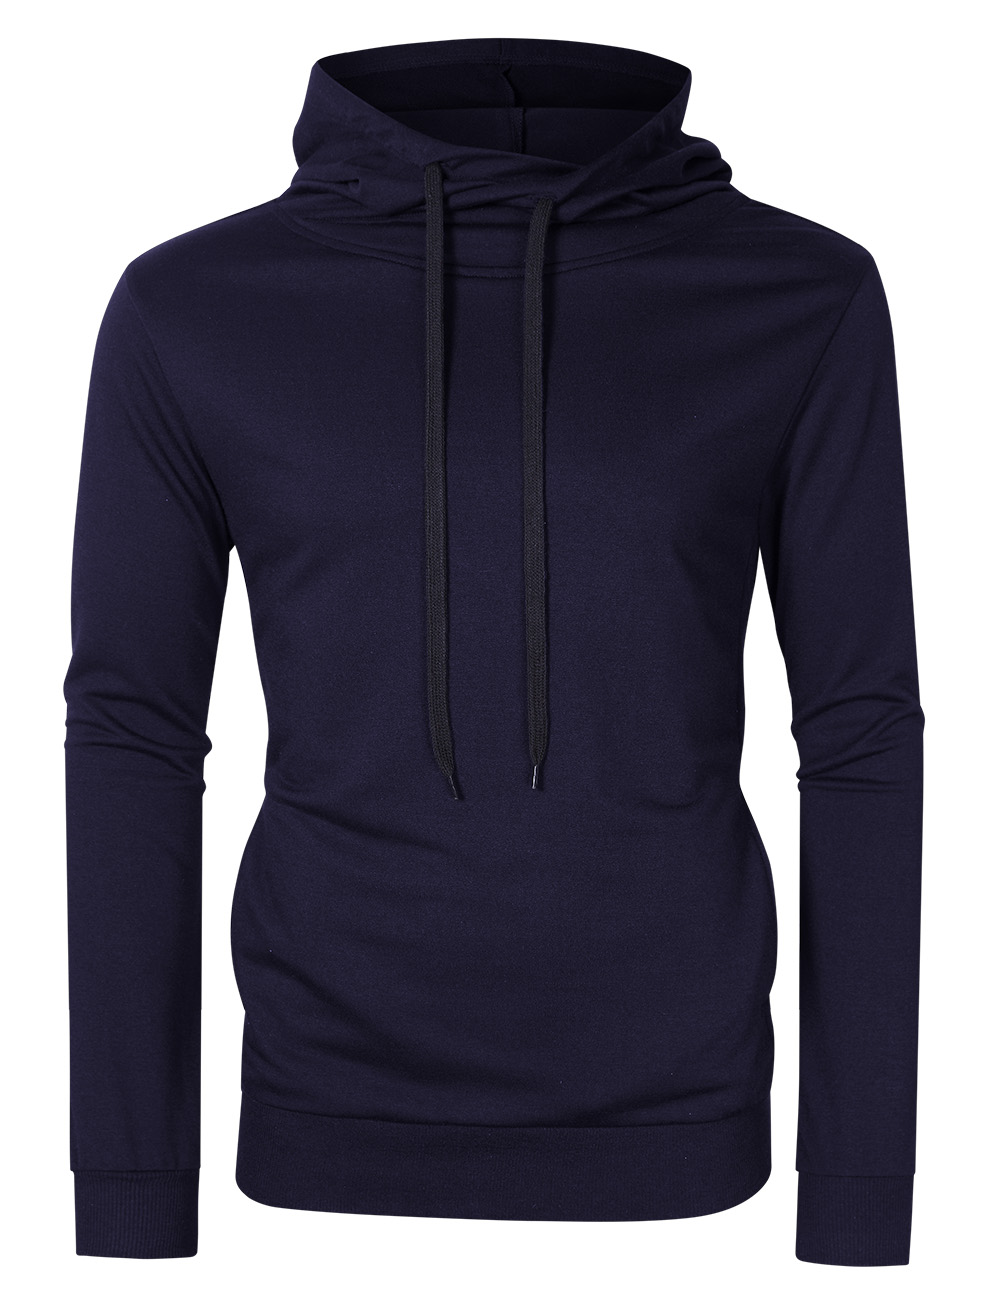 Yong Horse Hooded Sweatshirt - Royal Blue M